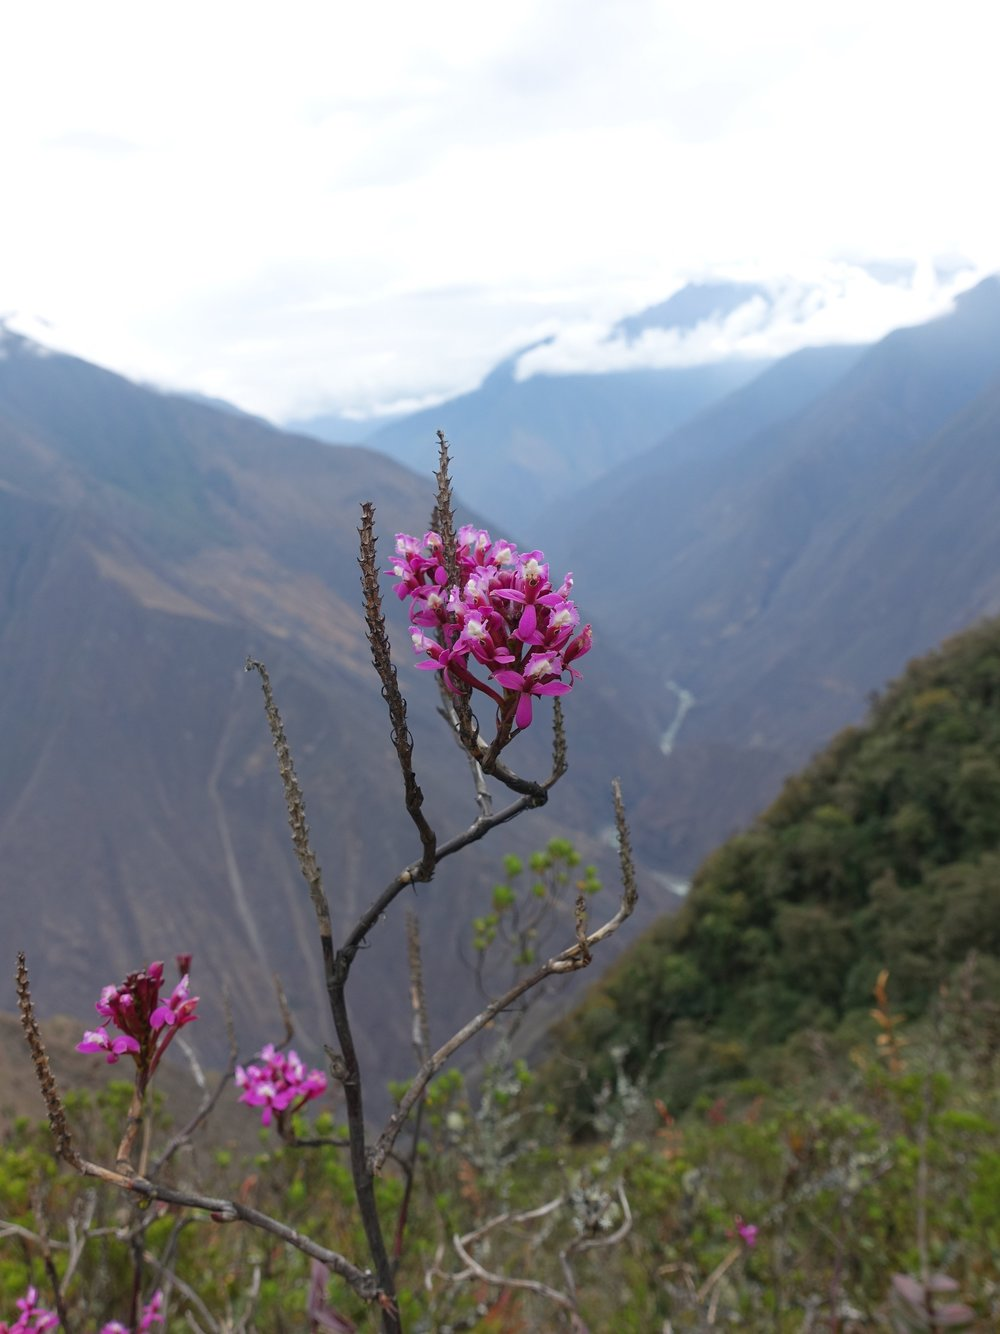 Wild flowers in the Andes Mountains